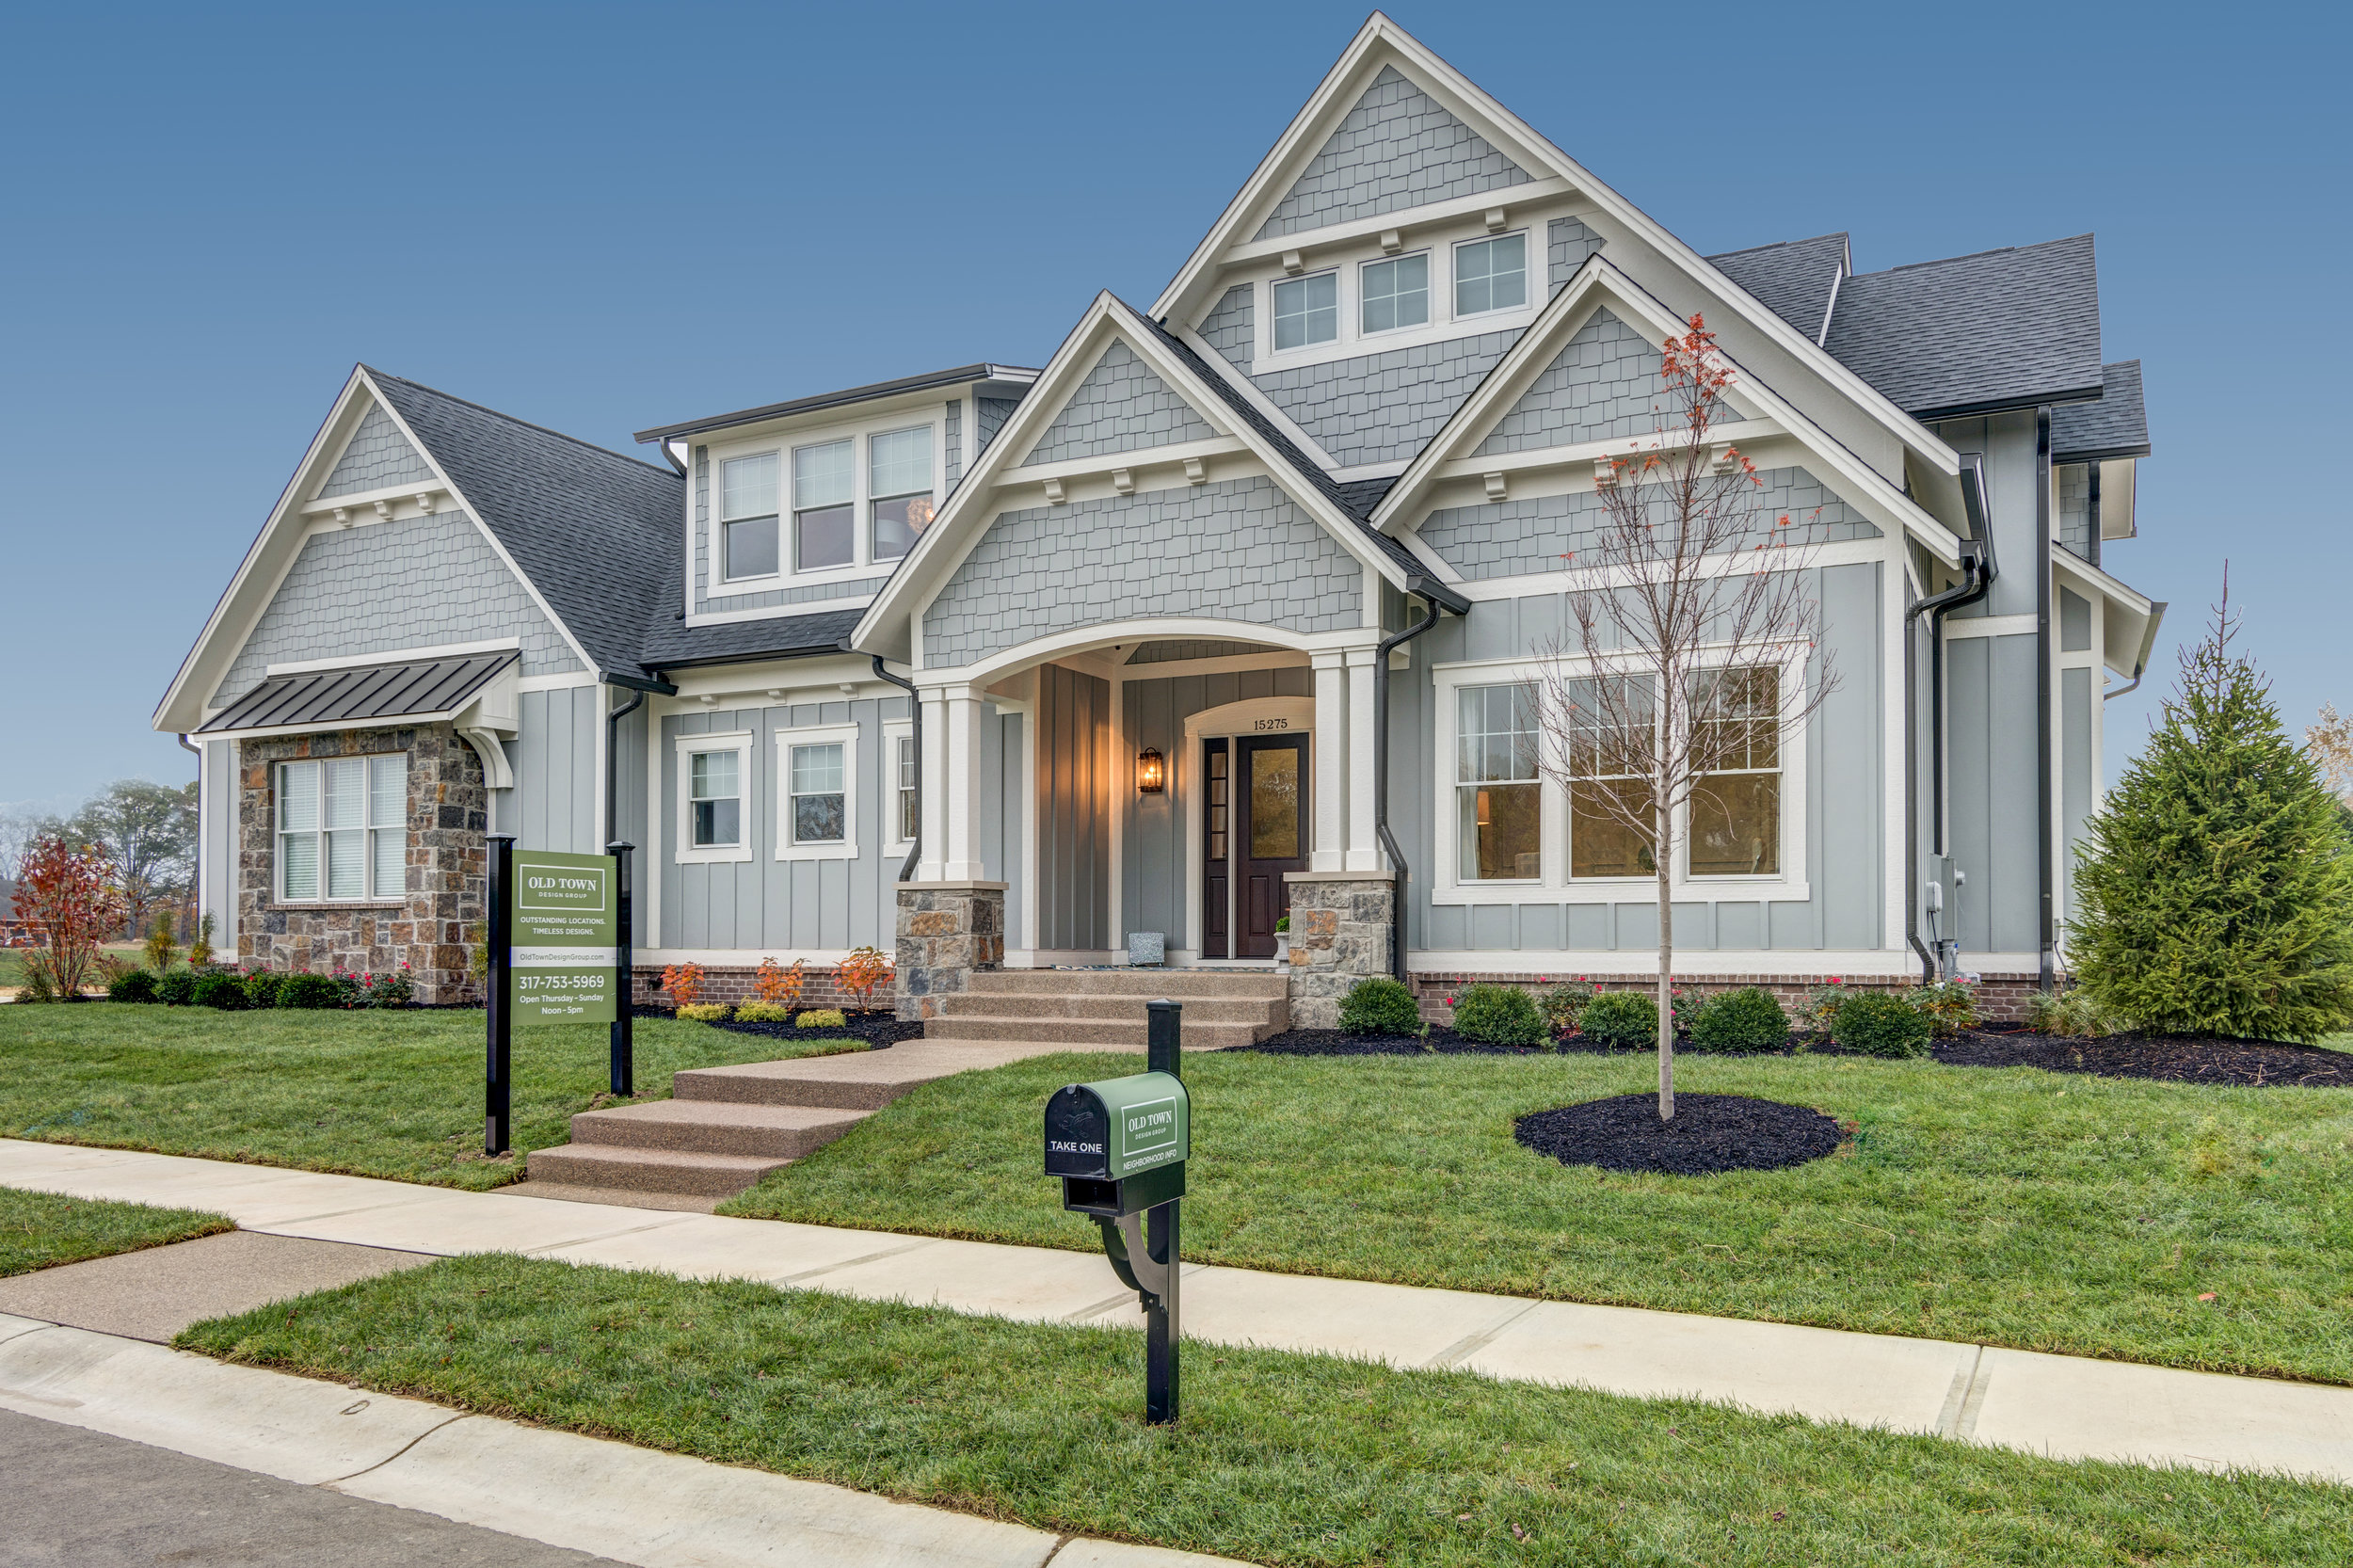 SYCAMORE PLAN:  Modern, Master-Down, 3 Bedroom, 2-Story